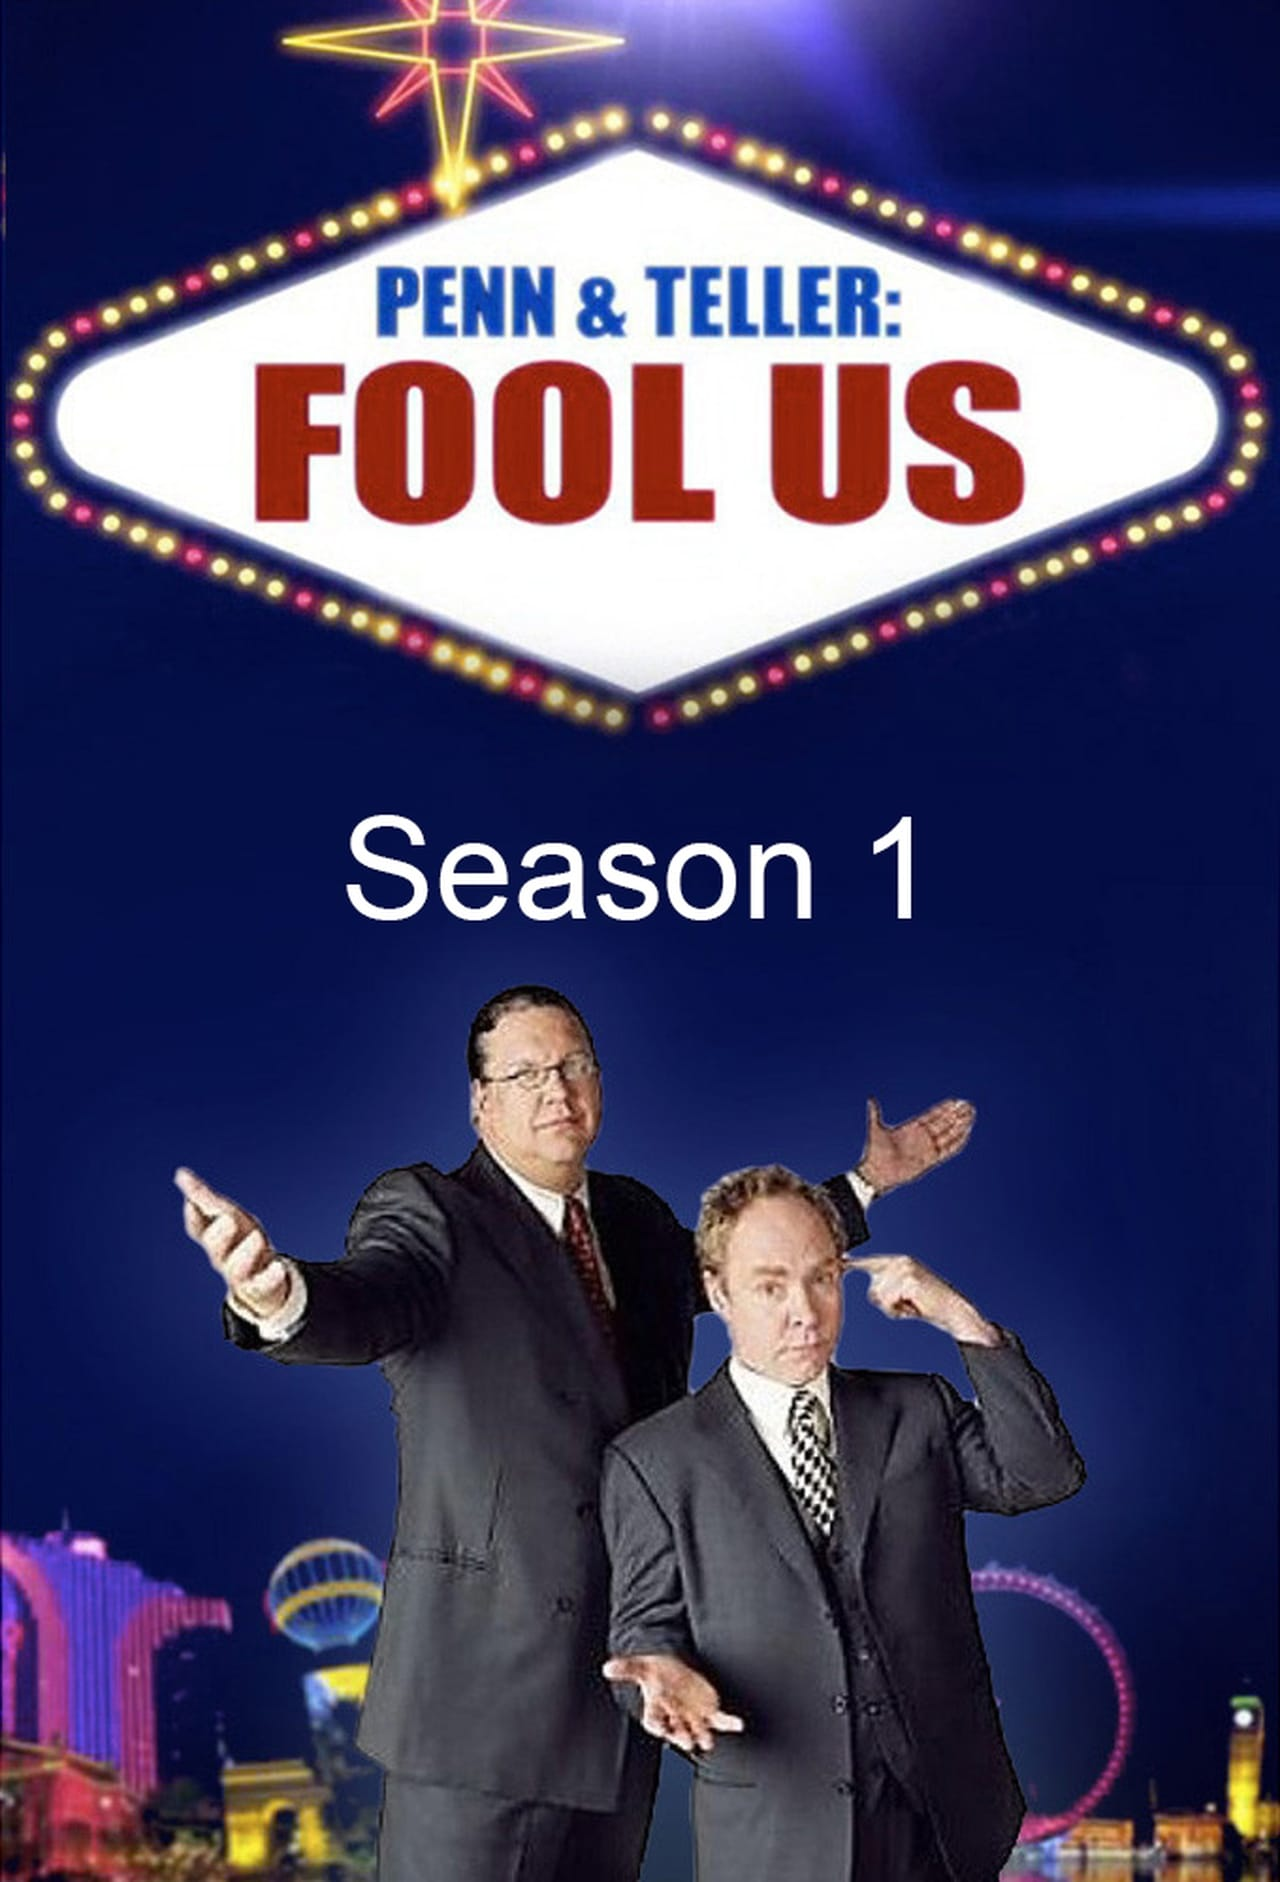 Watch Penn & Teller: Fool Us Season 1 Online